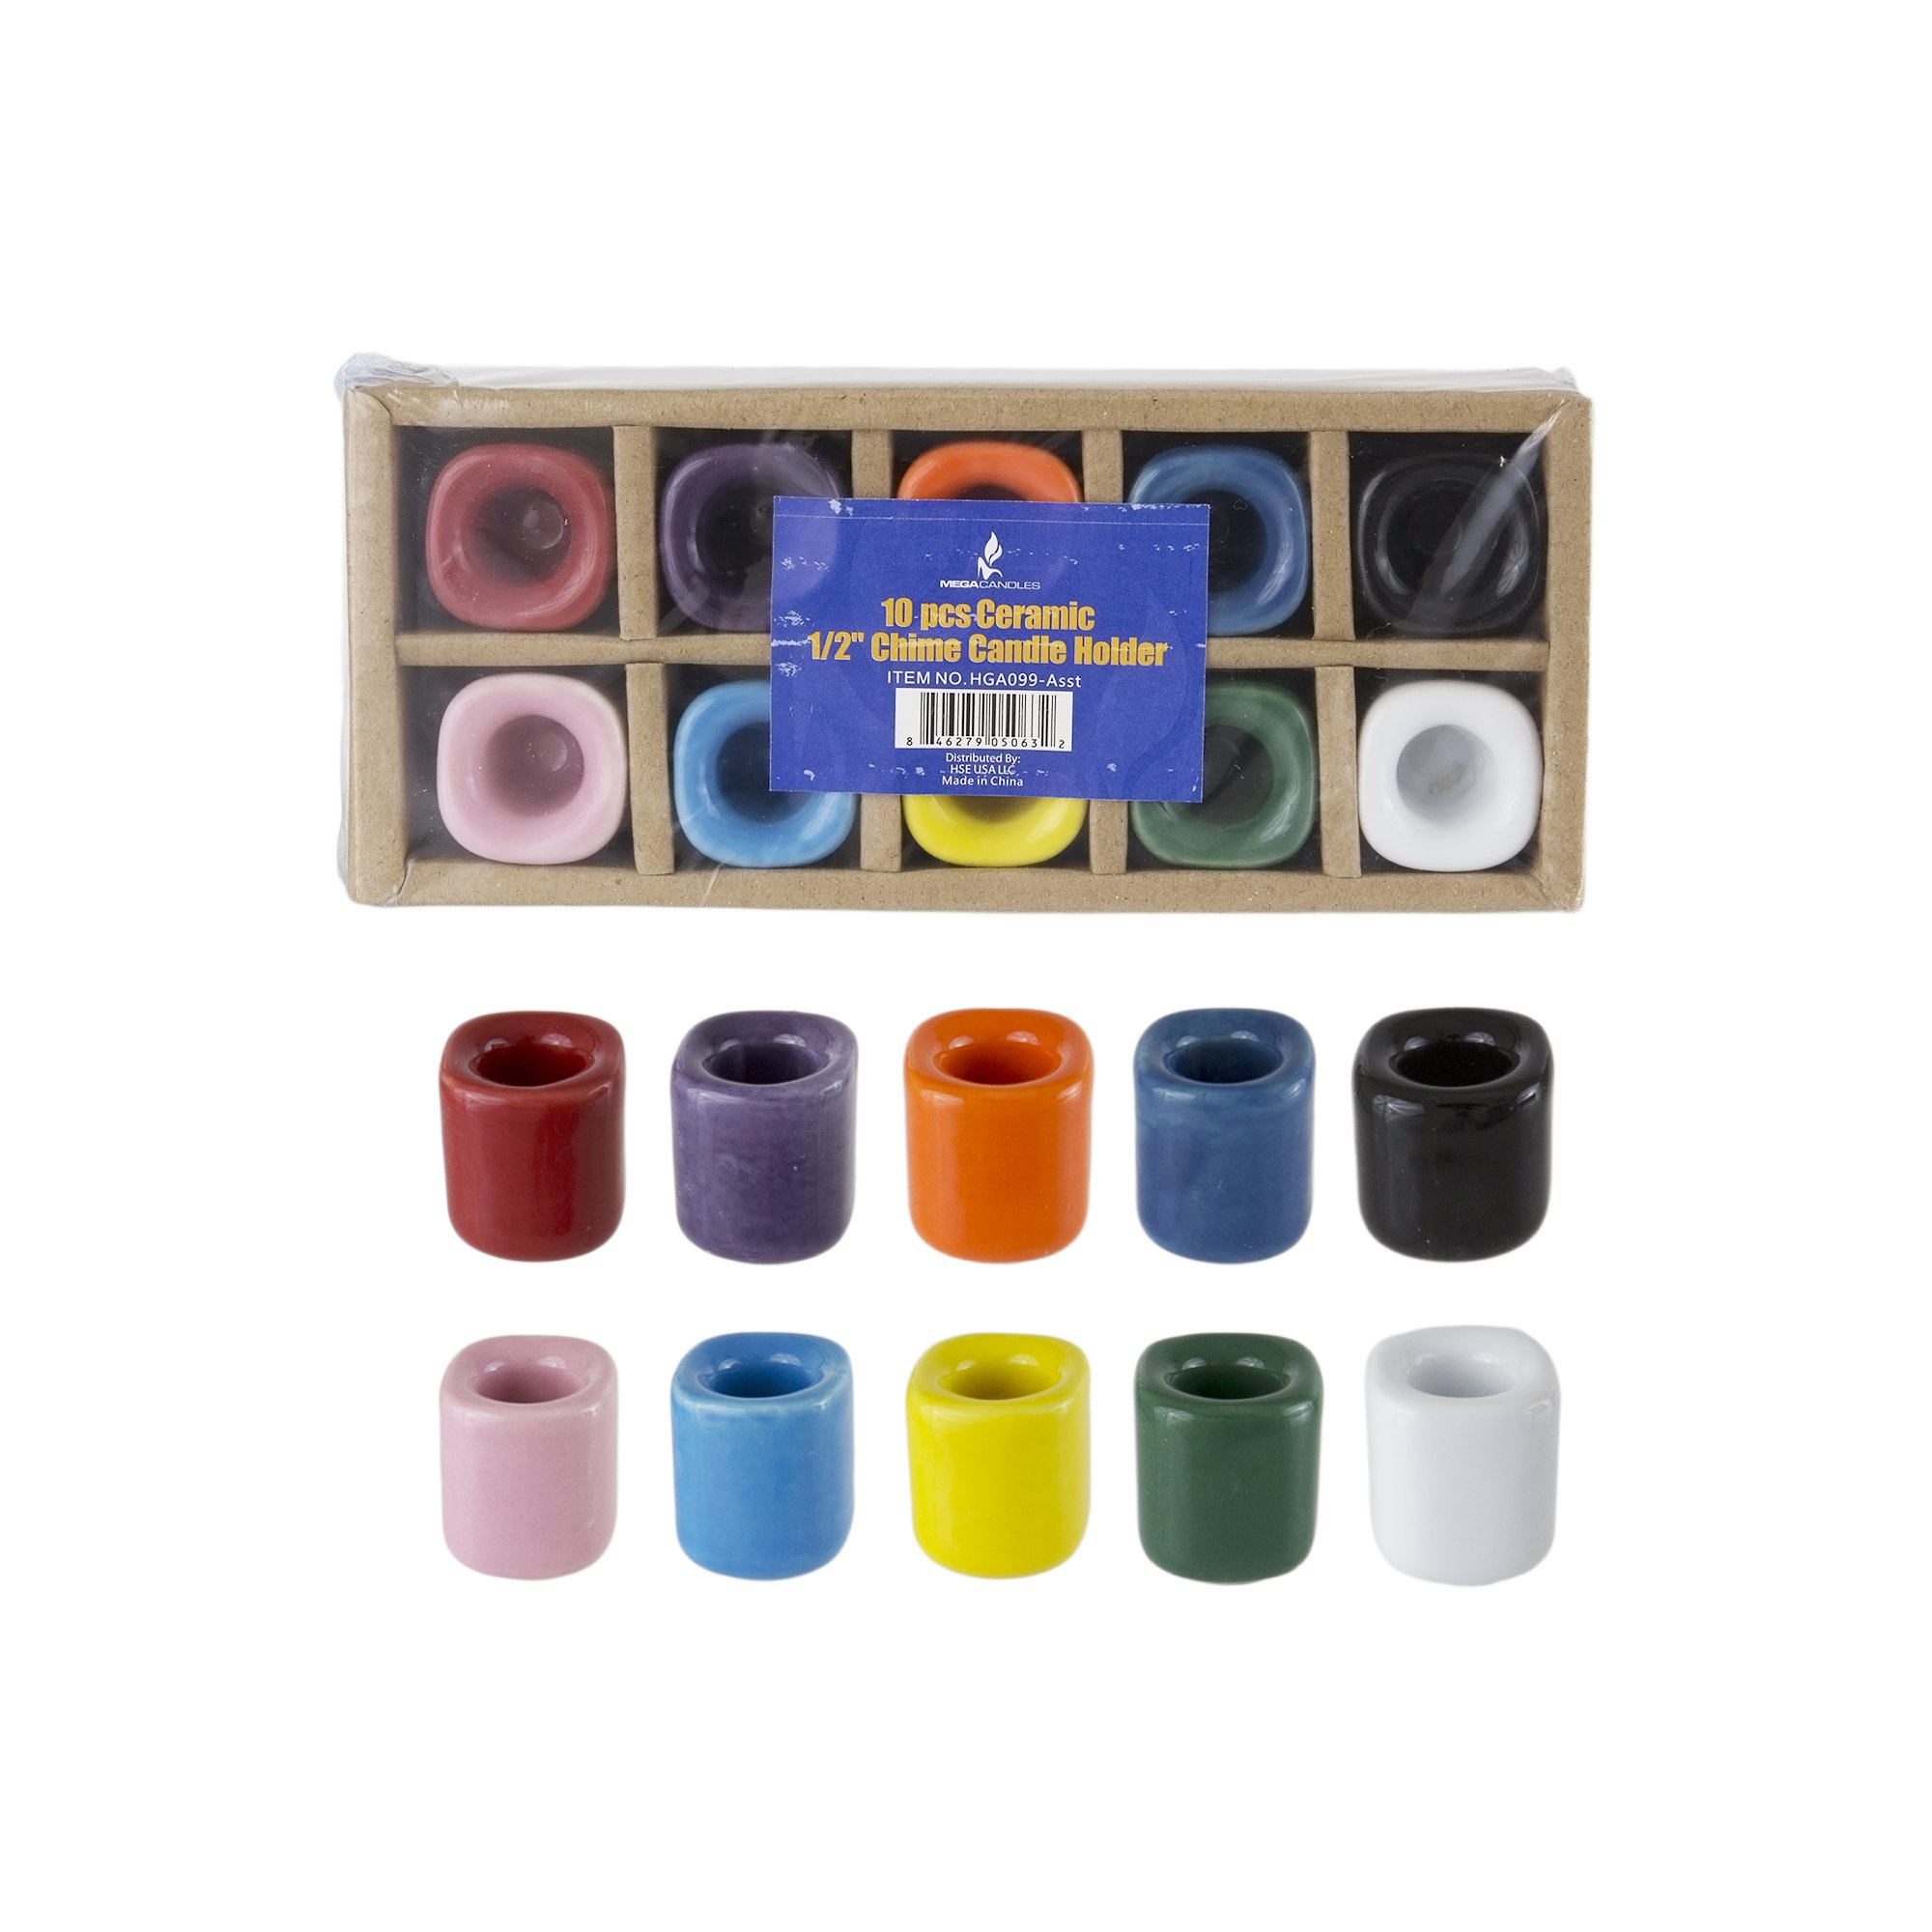 Mega Candles 10 pcs Ceramic Chime Ritual Spell Candle Holders - Assorted Colors